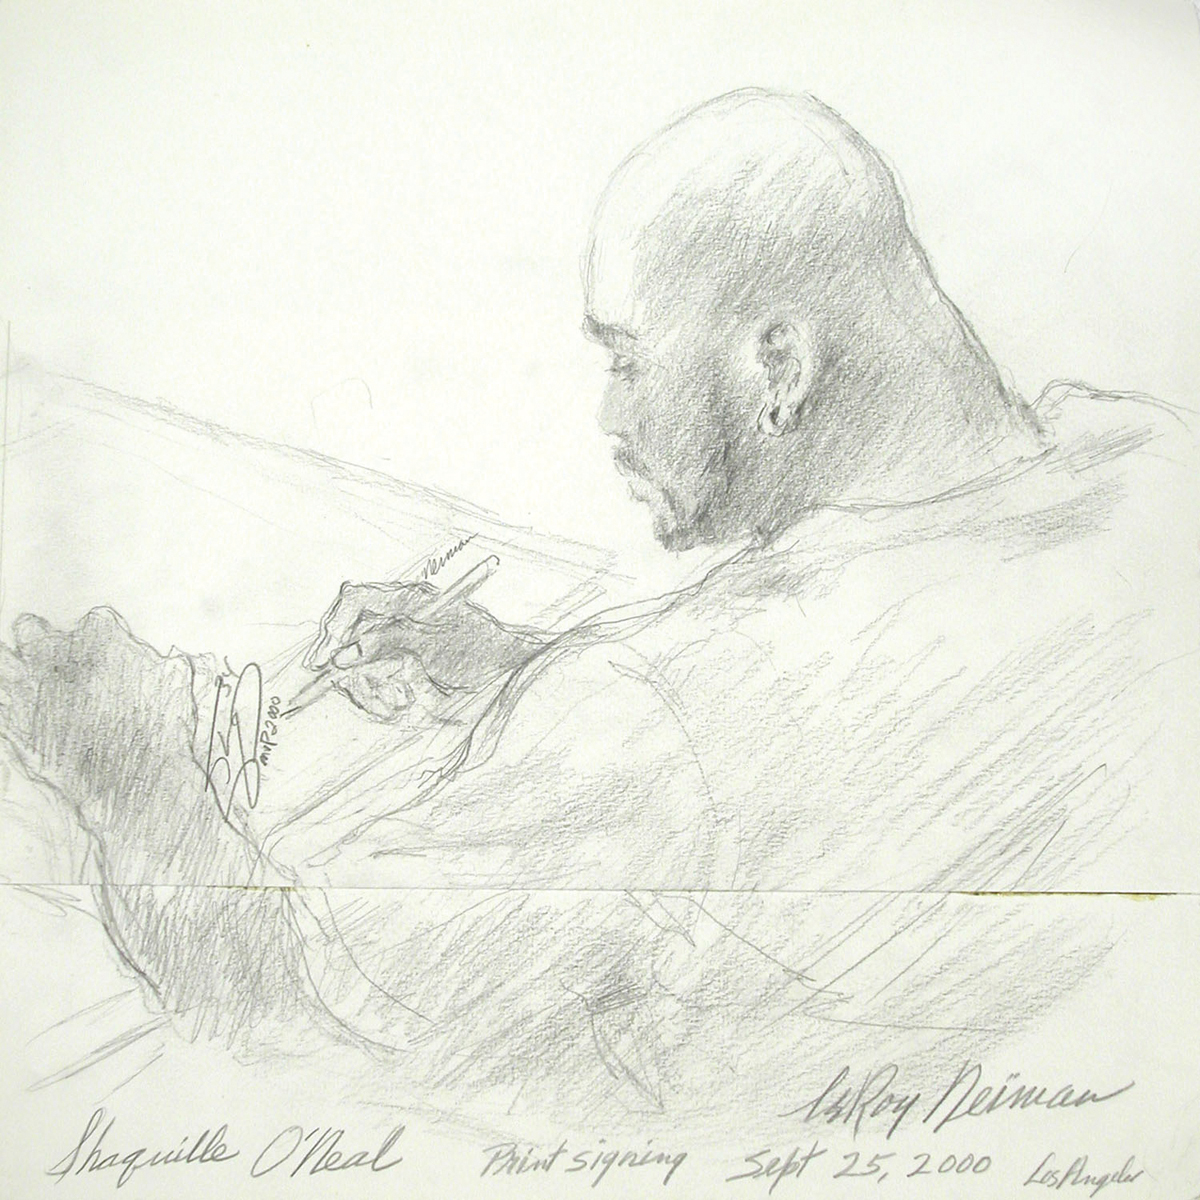 Shaquille O'Neal Print Signing, Pencil on Paper, 14.5 x 15 in, 2000